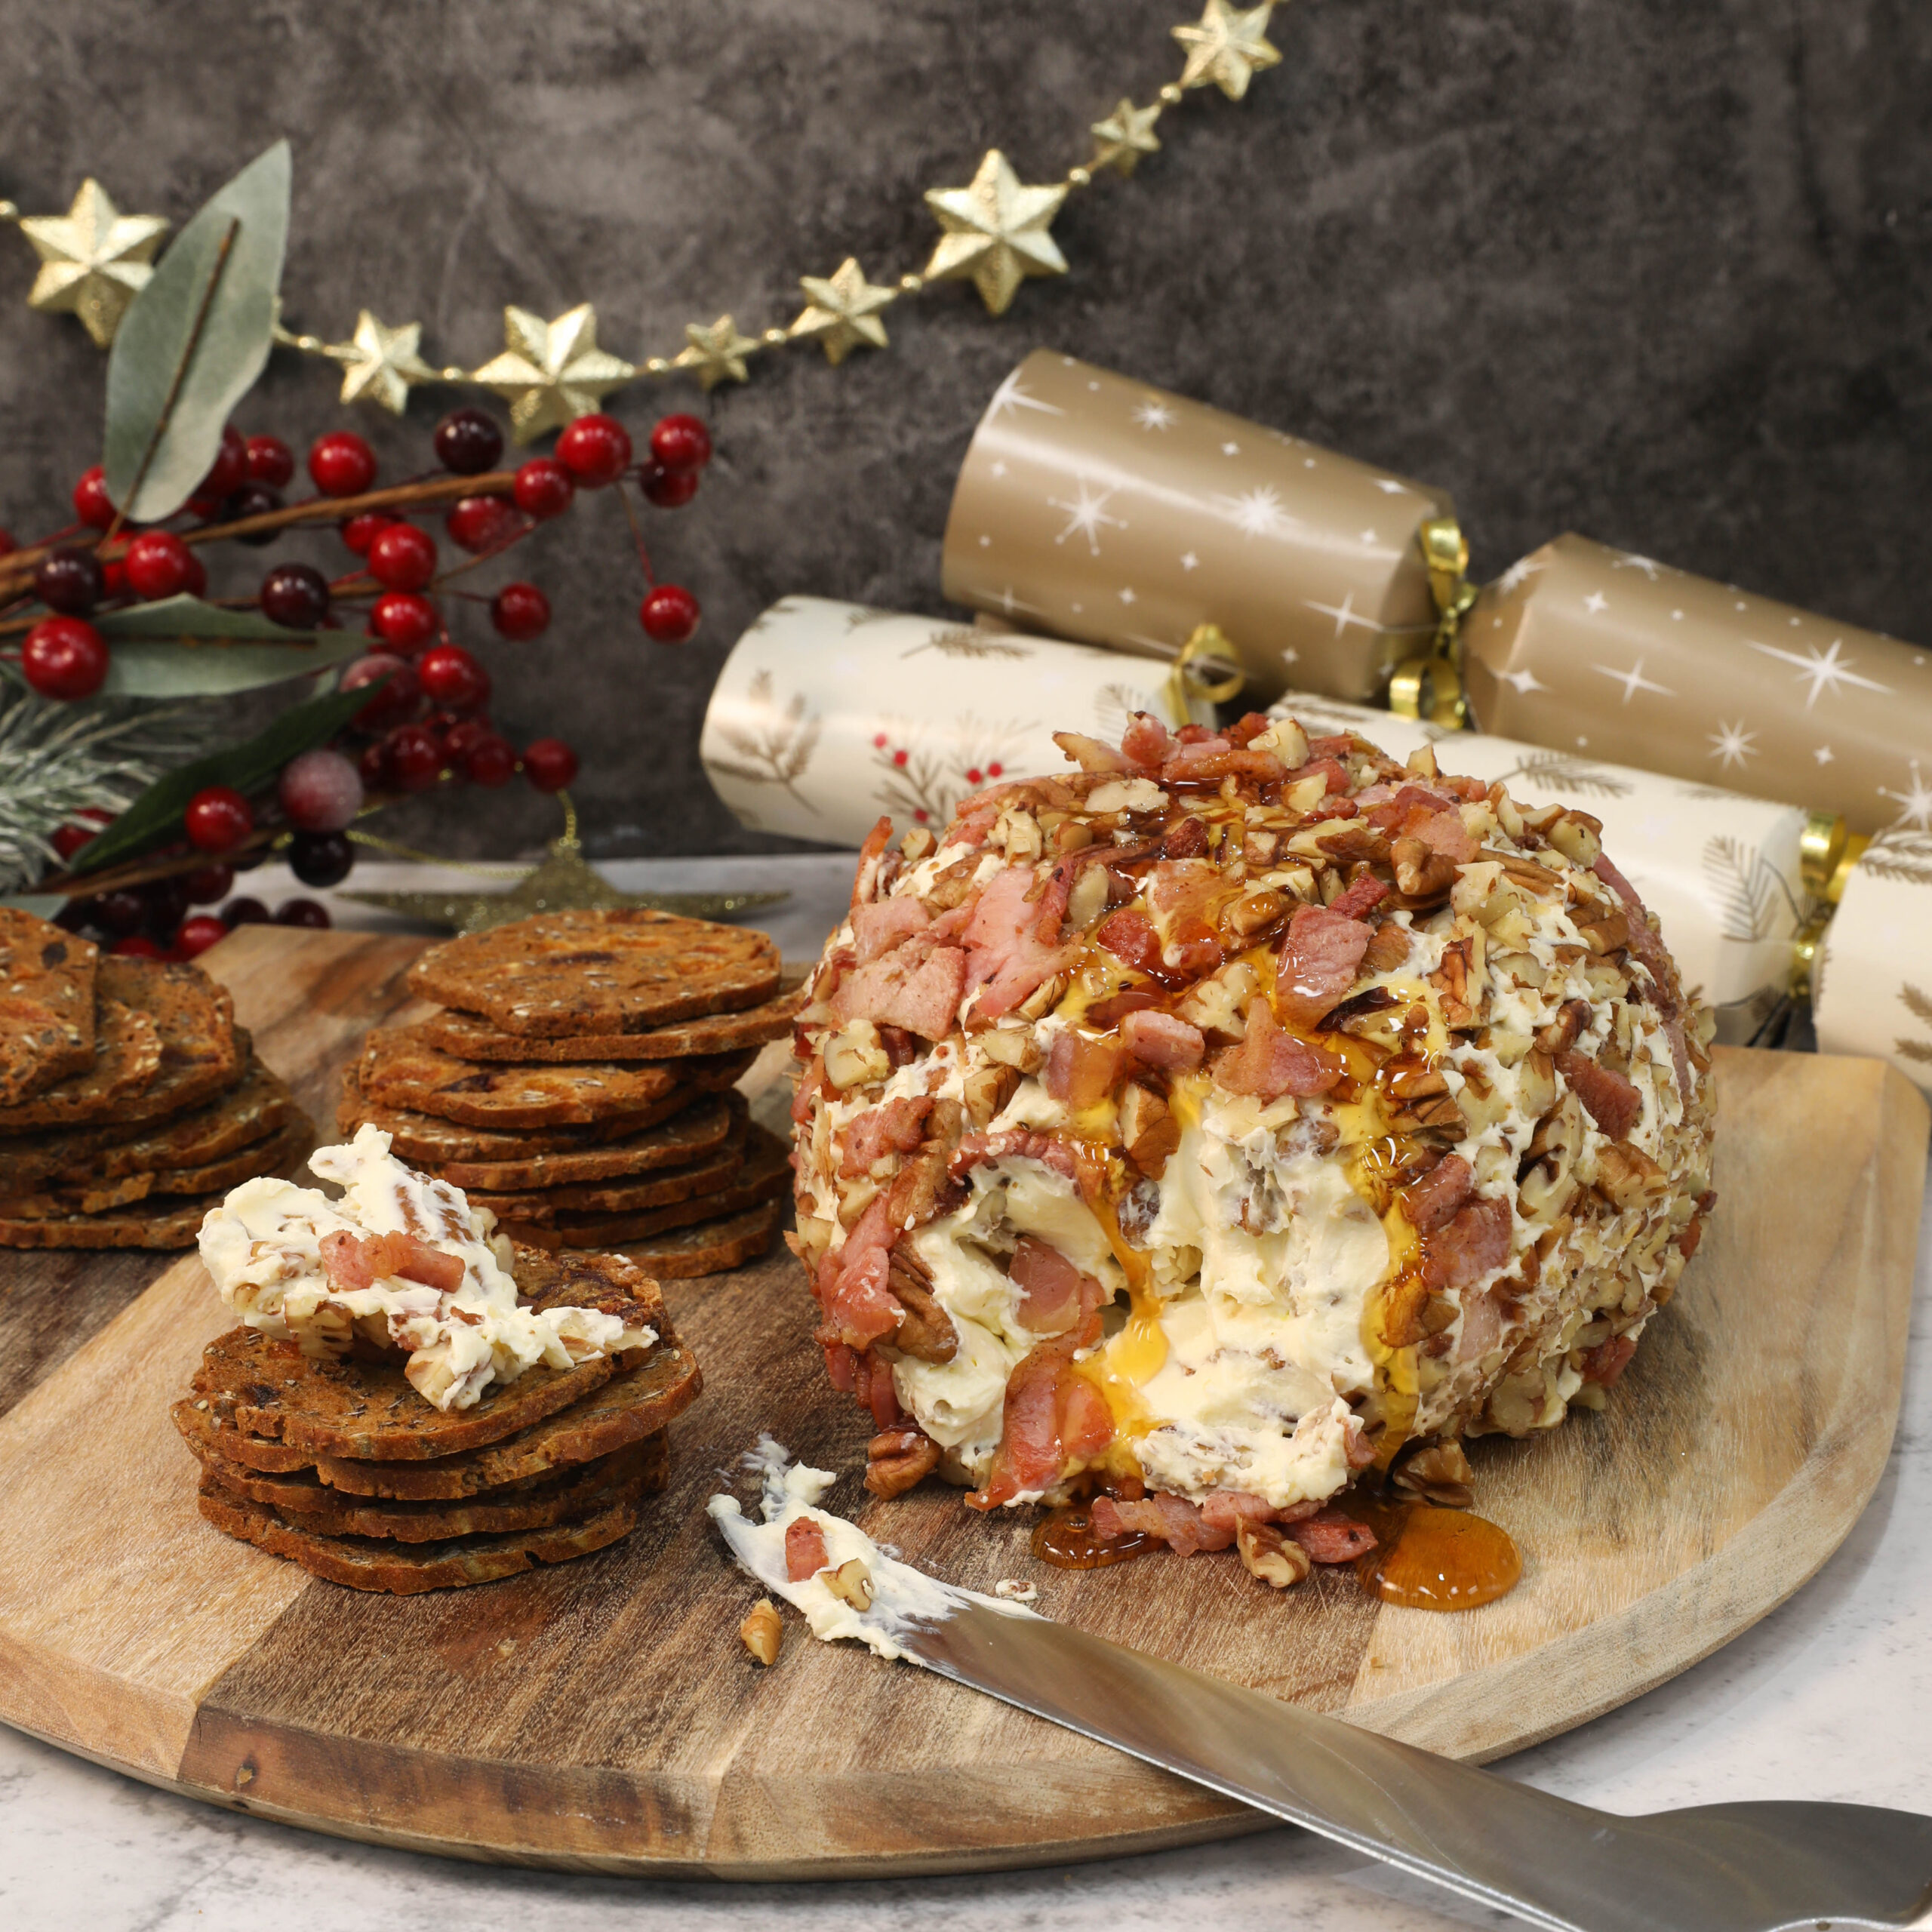 Bacon,maple and pecan cheeseball